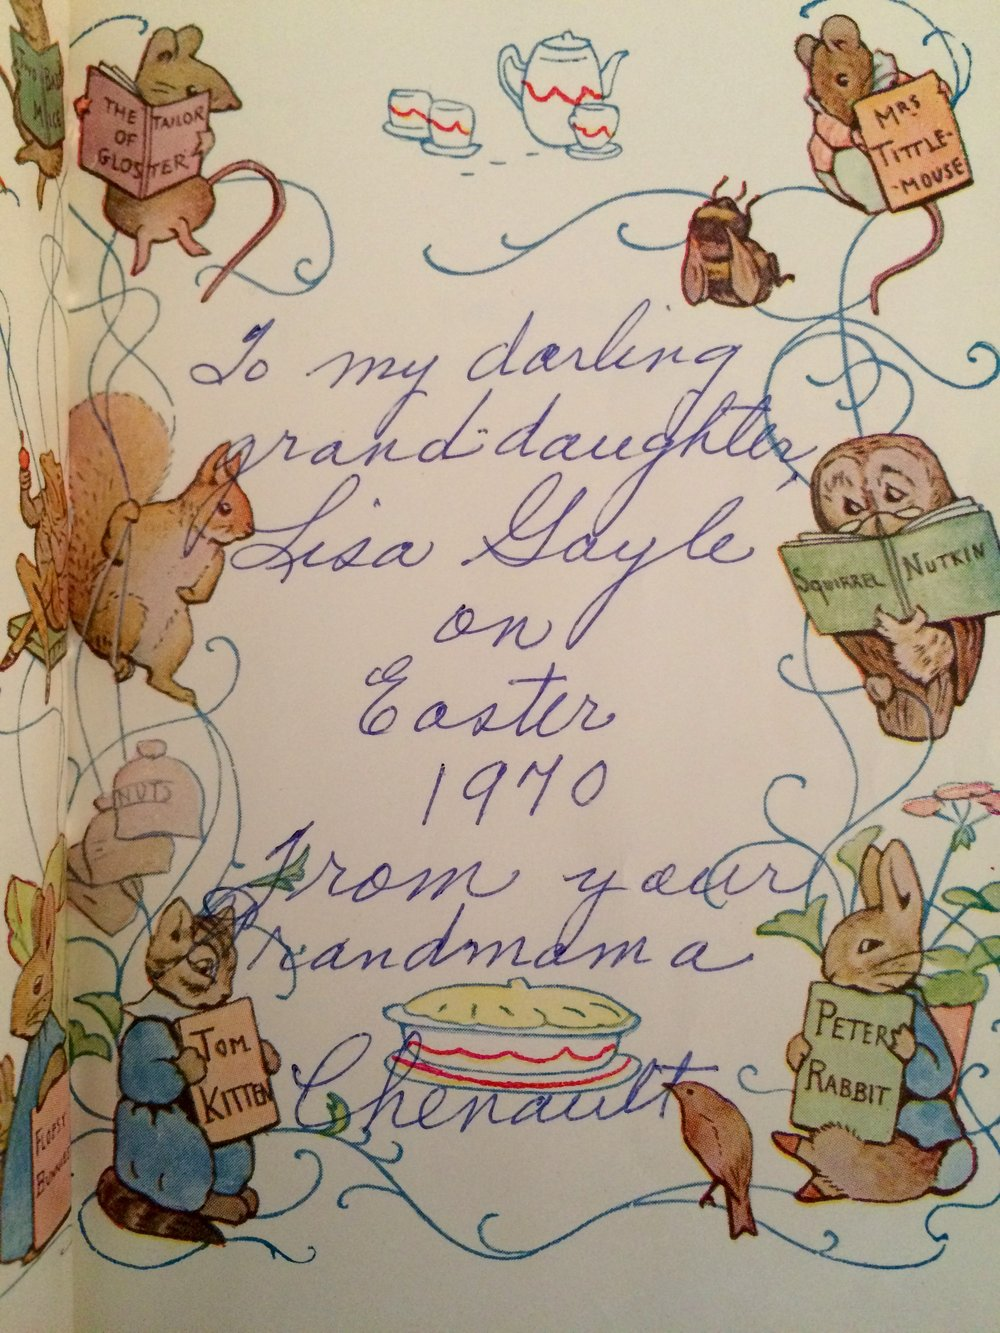 Inscription in The Tale of Peter Rabbit by Beatrix Potter